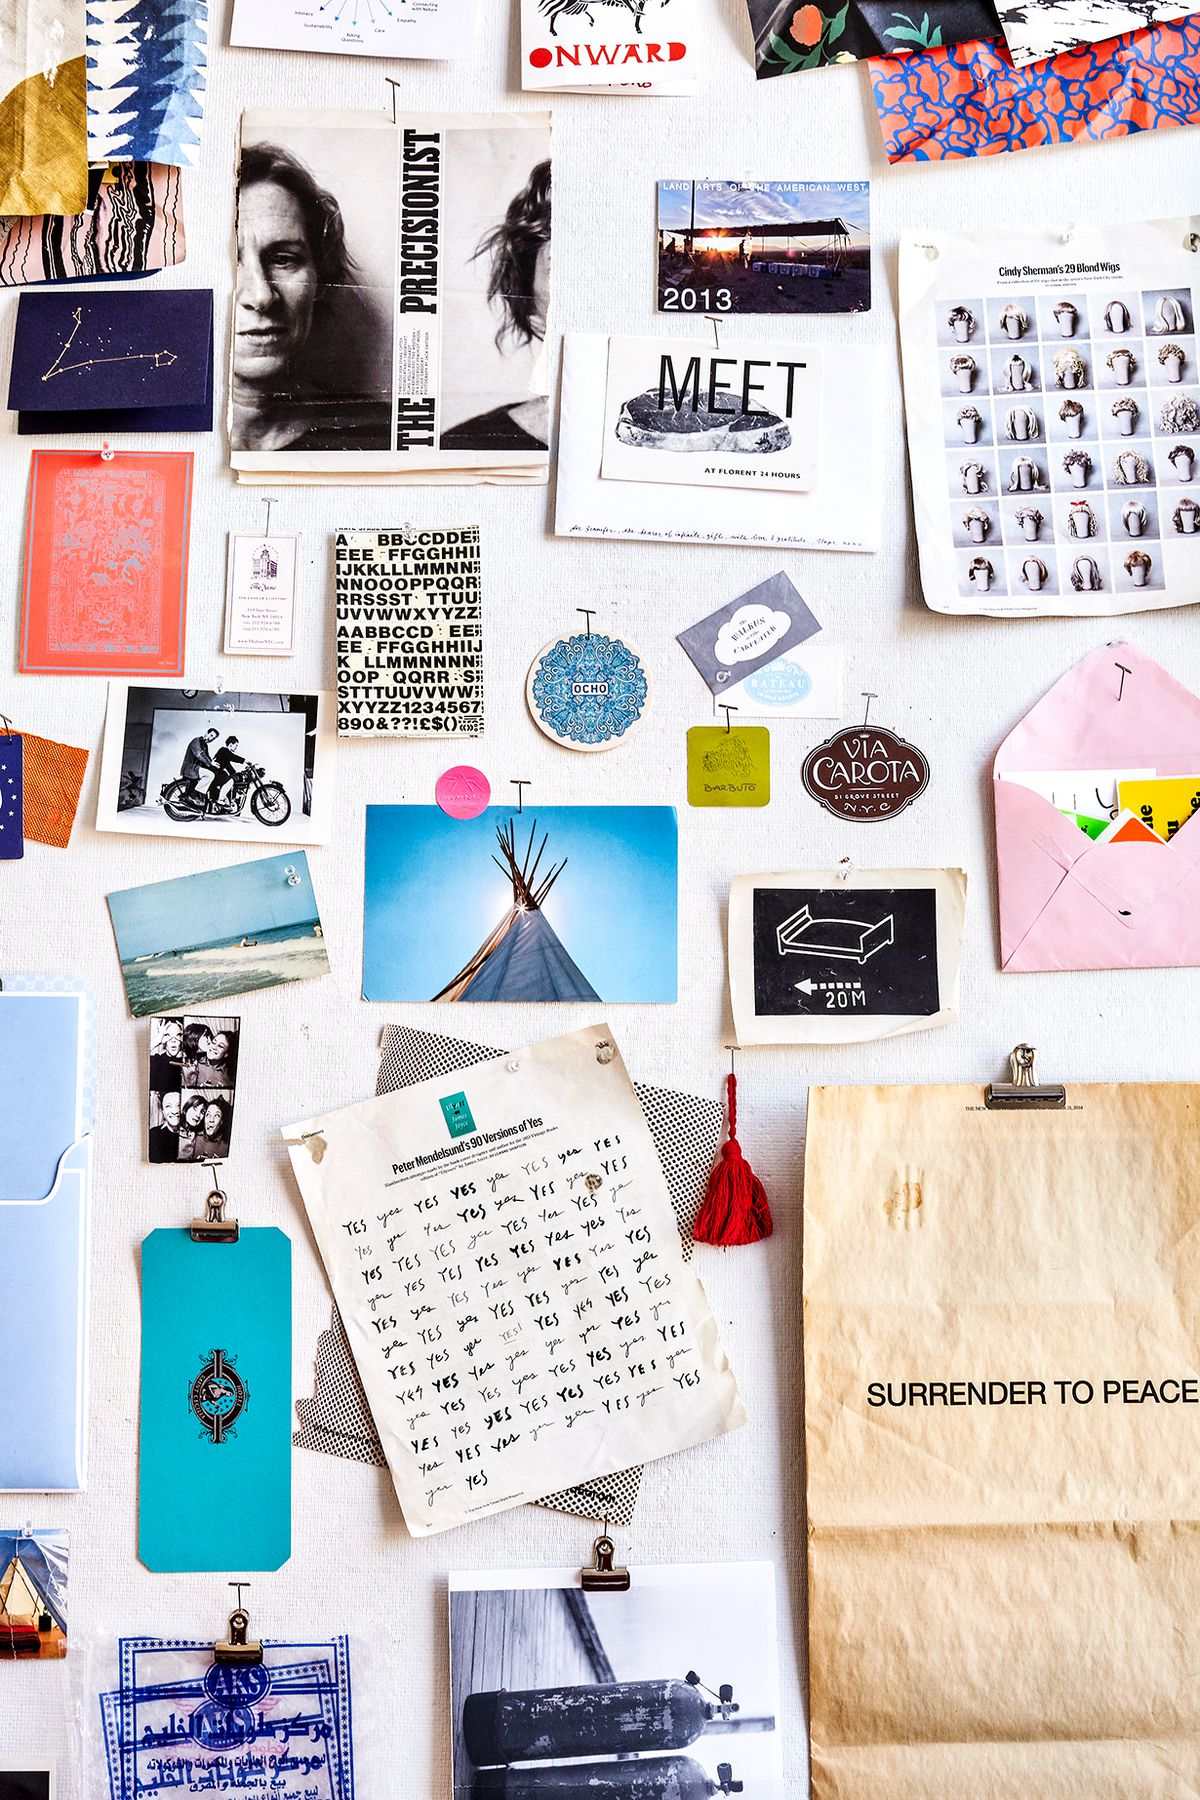 An inspiration board with multiple pieces of paper, photos, and magazine clippings.